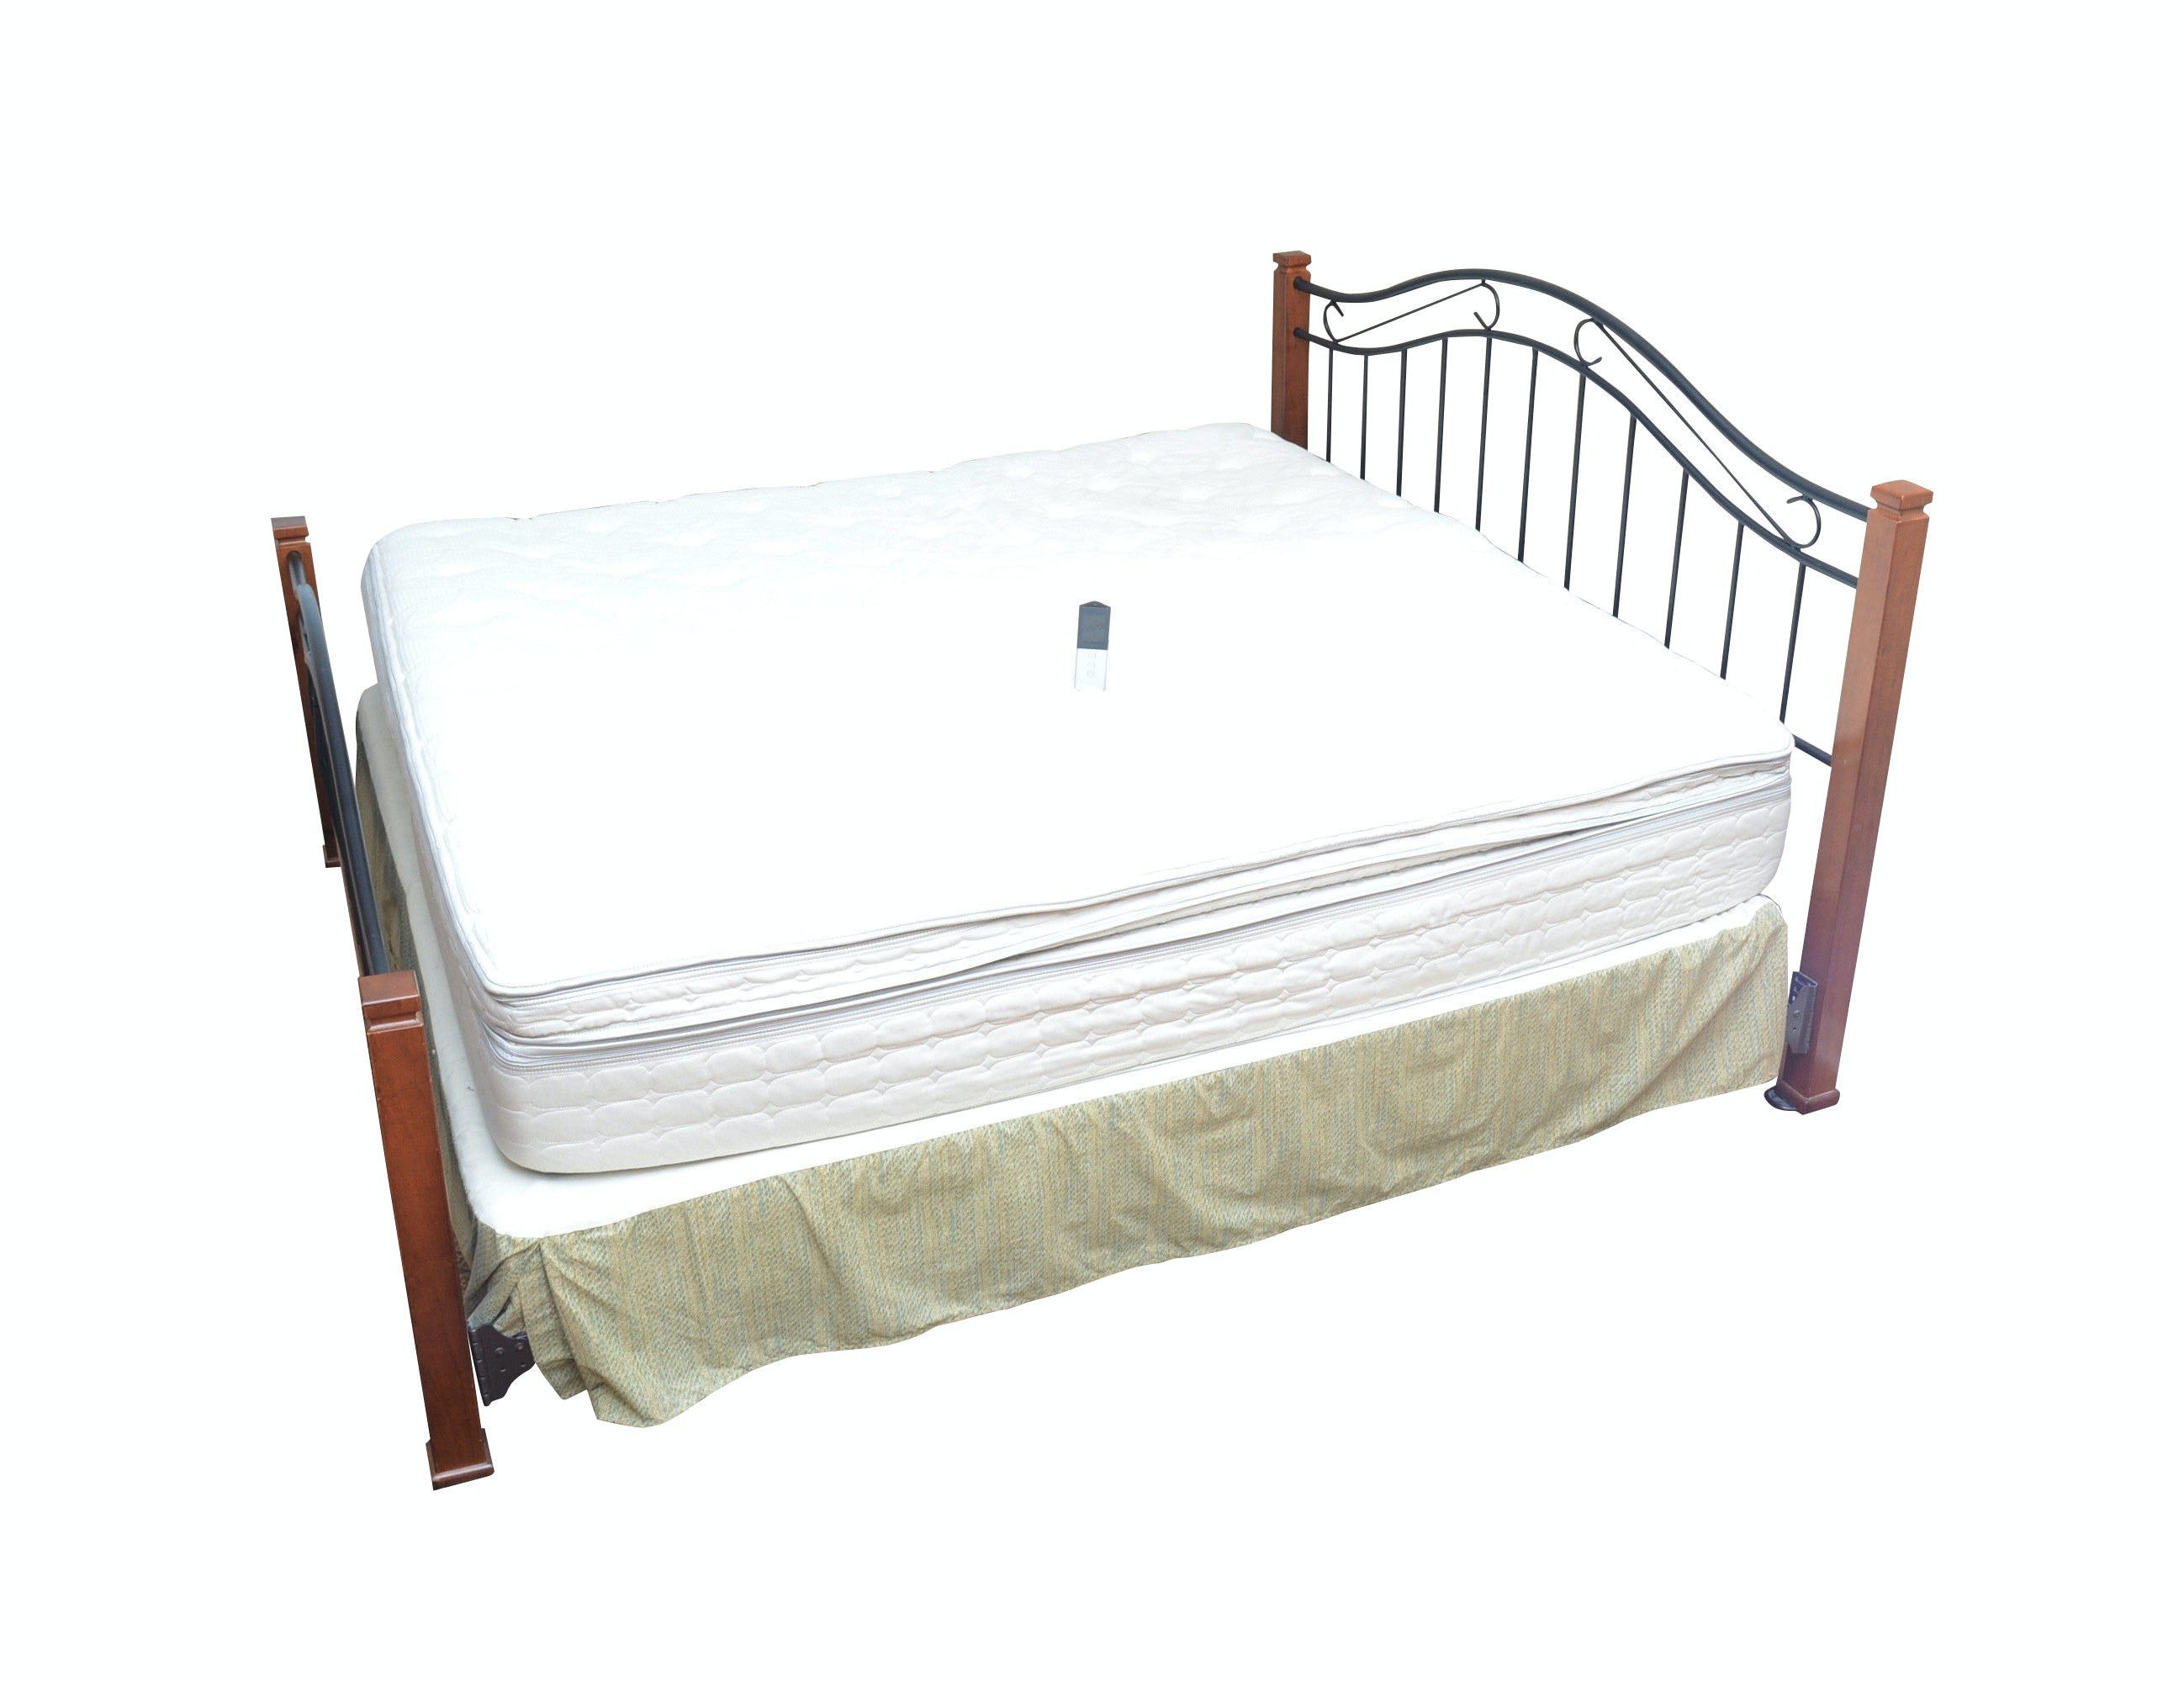 King Size Bed Frame with Sleep Number Mattress and Box Spring (Size King)